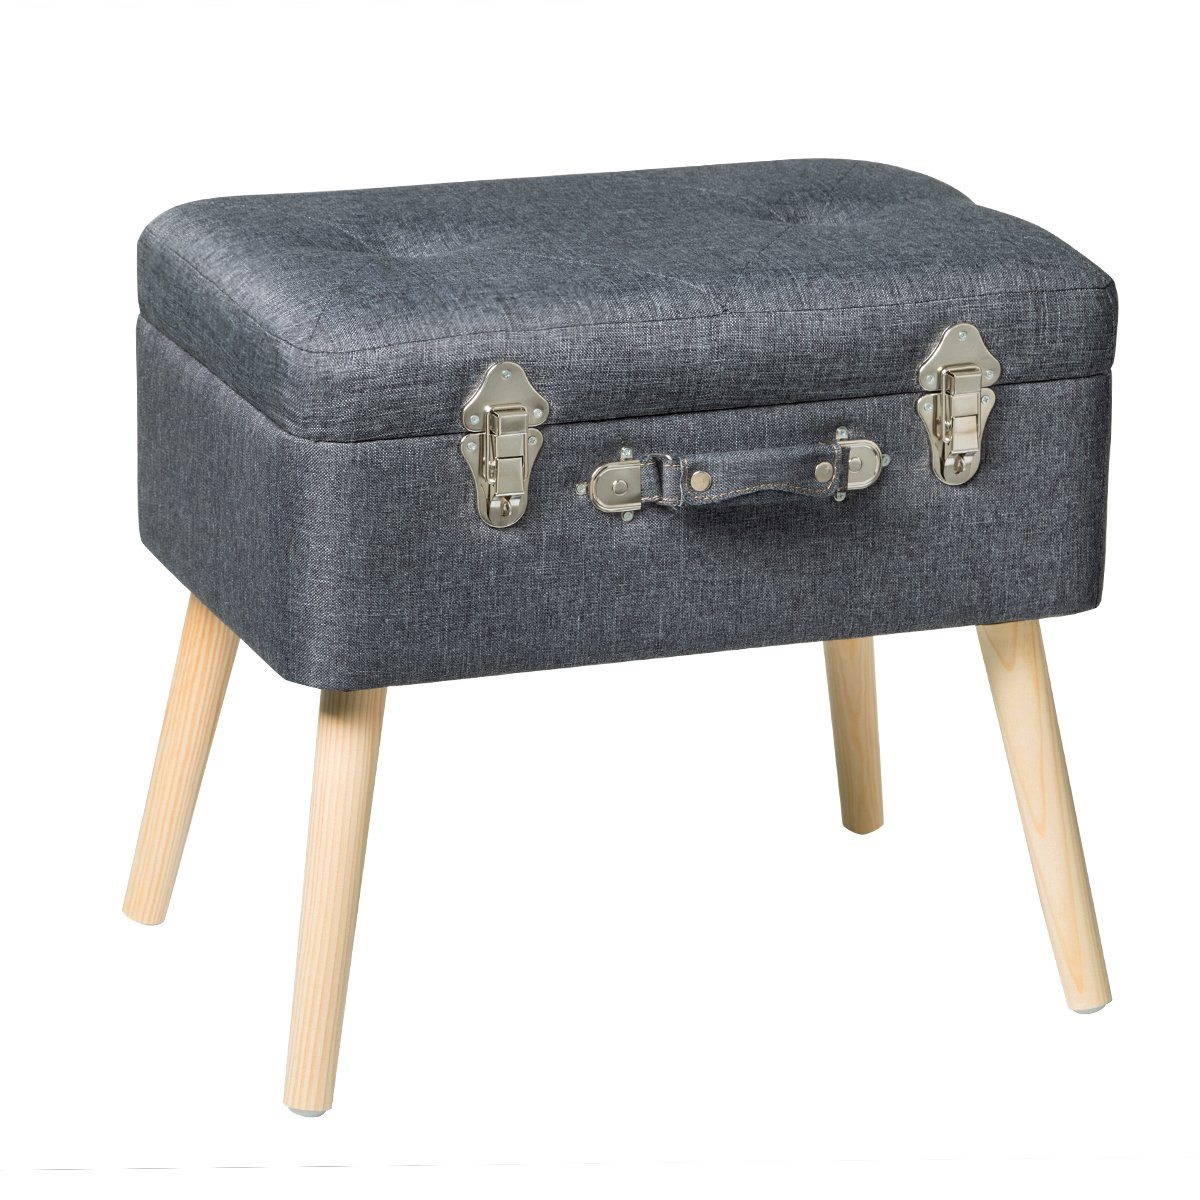 Edencomer Modern Storage Ottomans Container Bench Sturdy Foot Rest Stool Seat Smart Portable Collection Suitcase with Detachable Wooden Legs and Safety Lock for Home Travel, Classic Grey